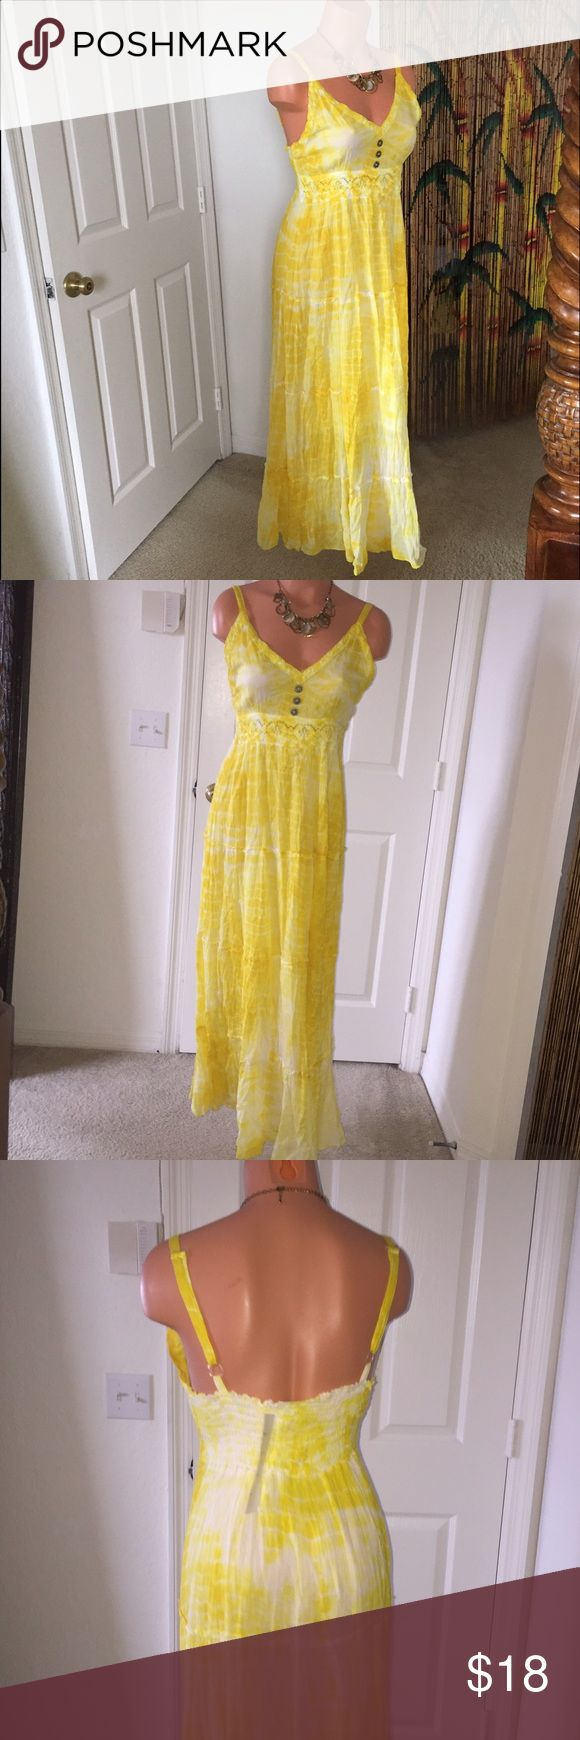 🔆Jessica Taylor🔆-Gorgeous Maxi Dress 100% Cotton-Flowing Maxi Dress - Adjustable Straps and pretty buttoned detailed front Jessica Taylor Dresses Maxi